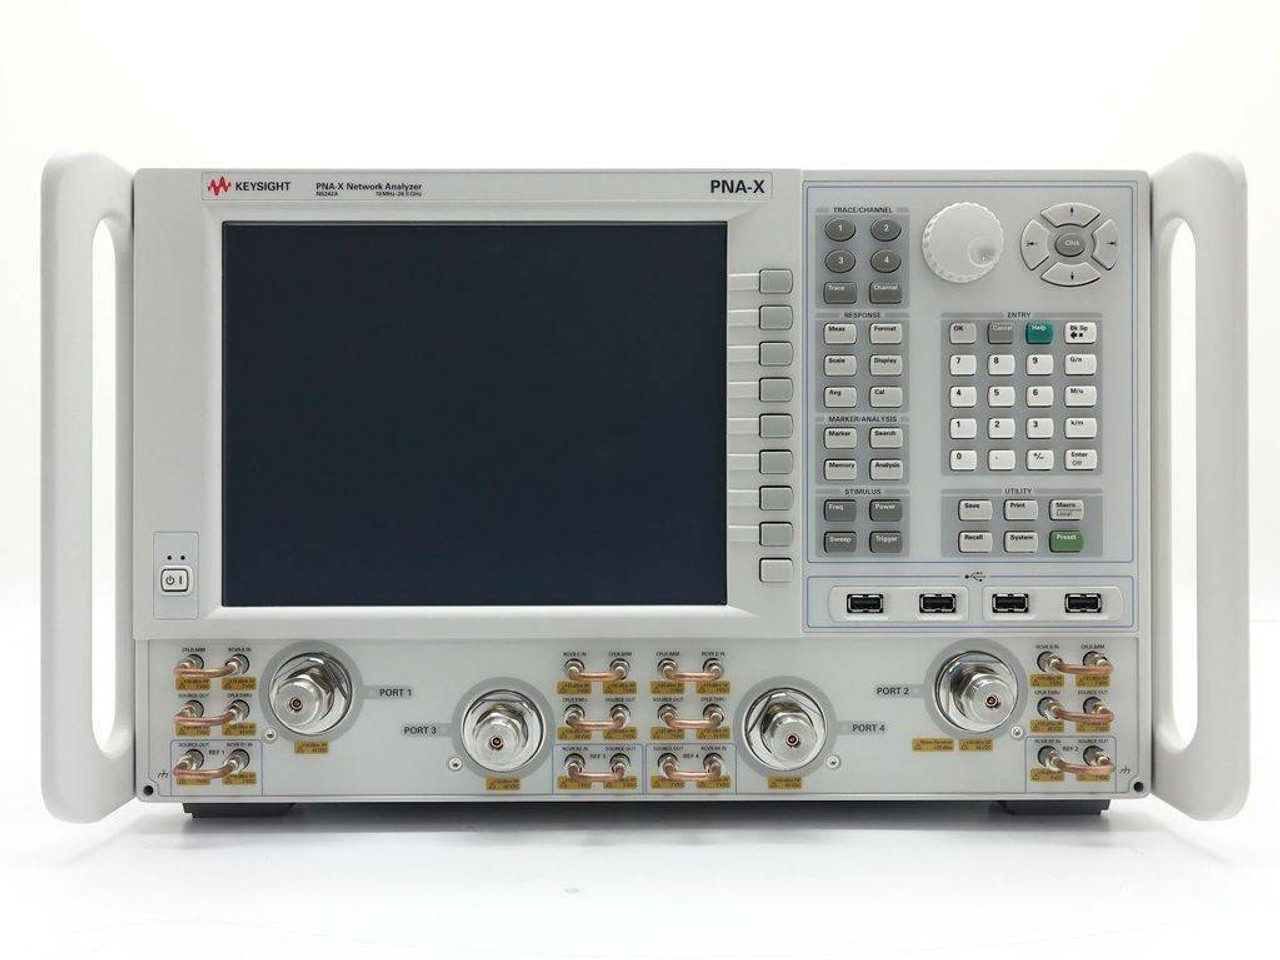 Network Analyzer Keysight N5242a 10mhz 26 5ghz Pna X Network Analyzer W Opts 29 80 400 419 423